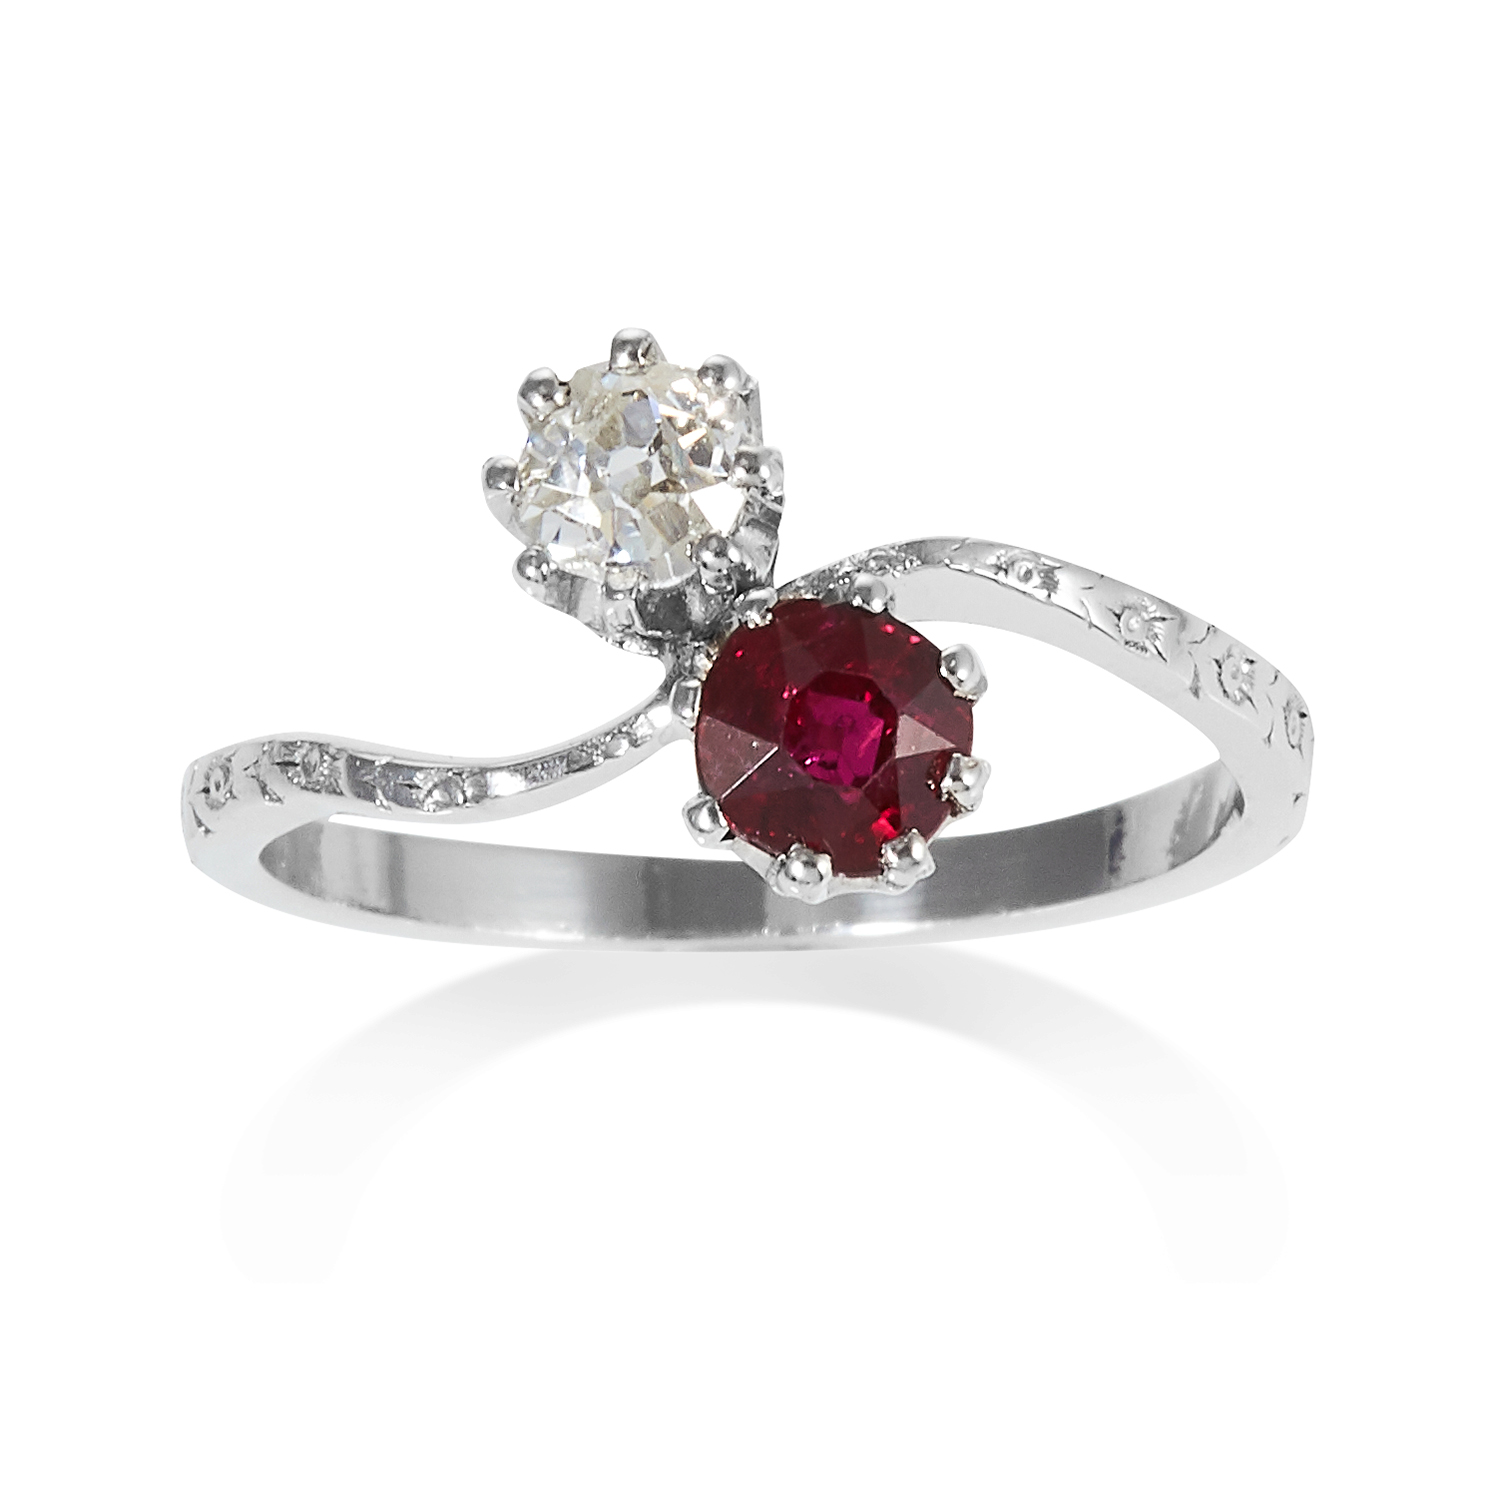 Los 3 - A RUBY AND DIAMOND TOI ET MOI RING in platinum, set with a round cut ruby of approximately 0.60